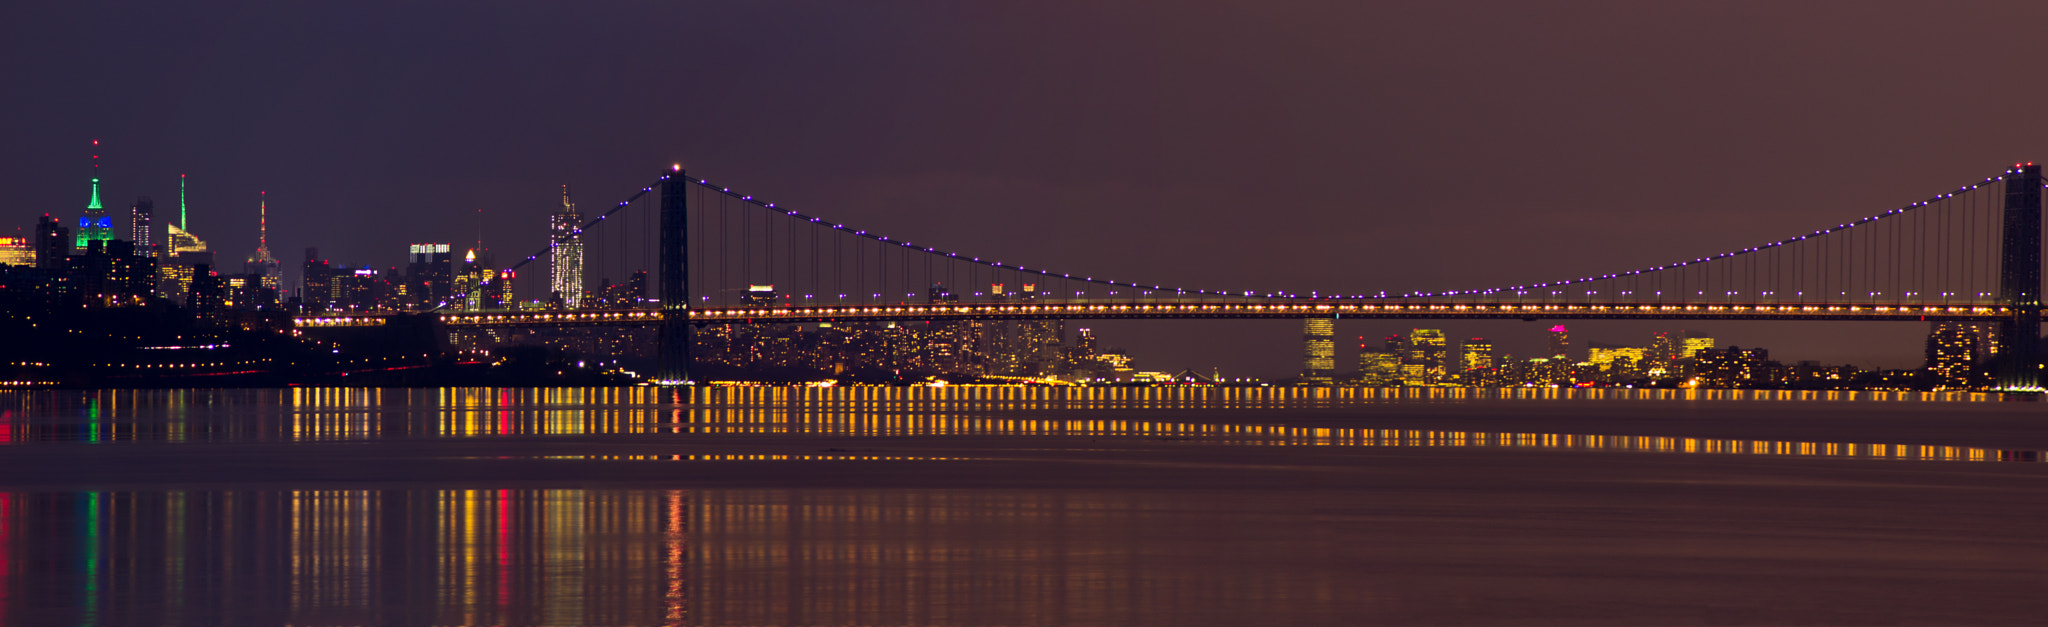 Photograph NYC Lights by Steve Jaccino on 500px